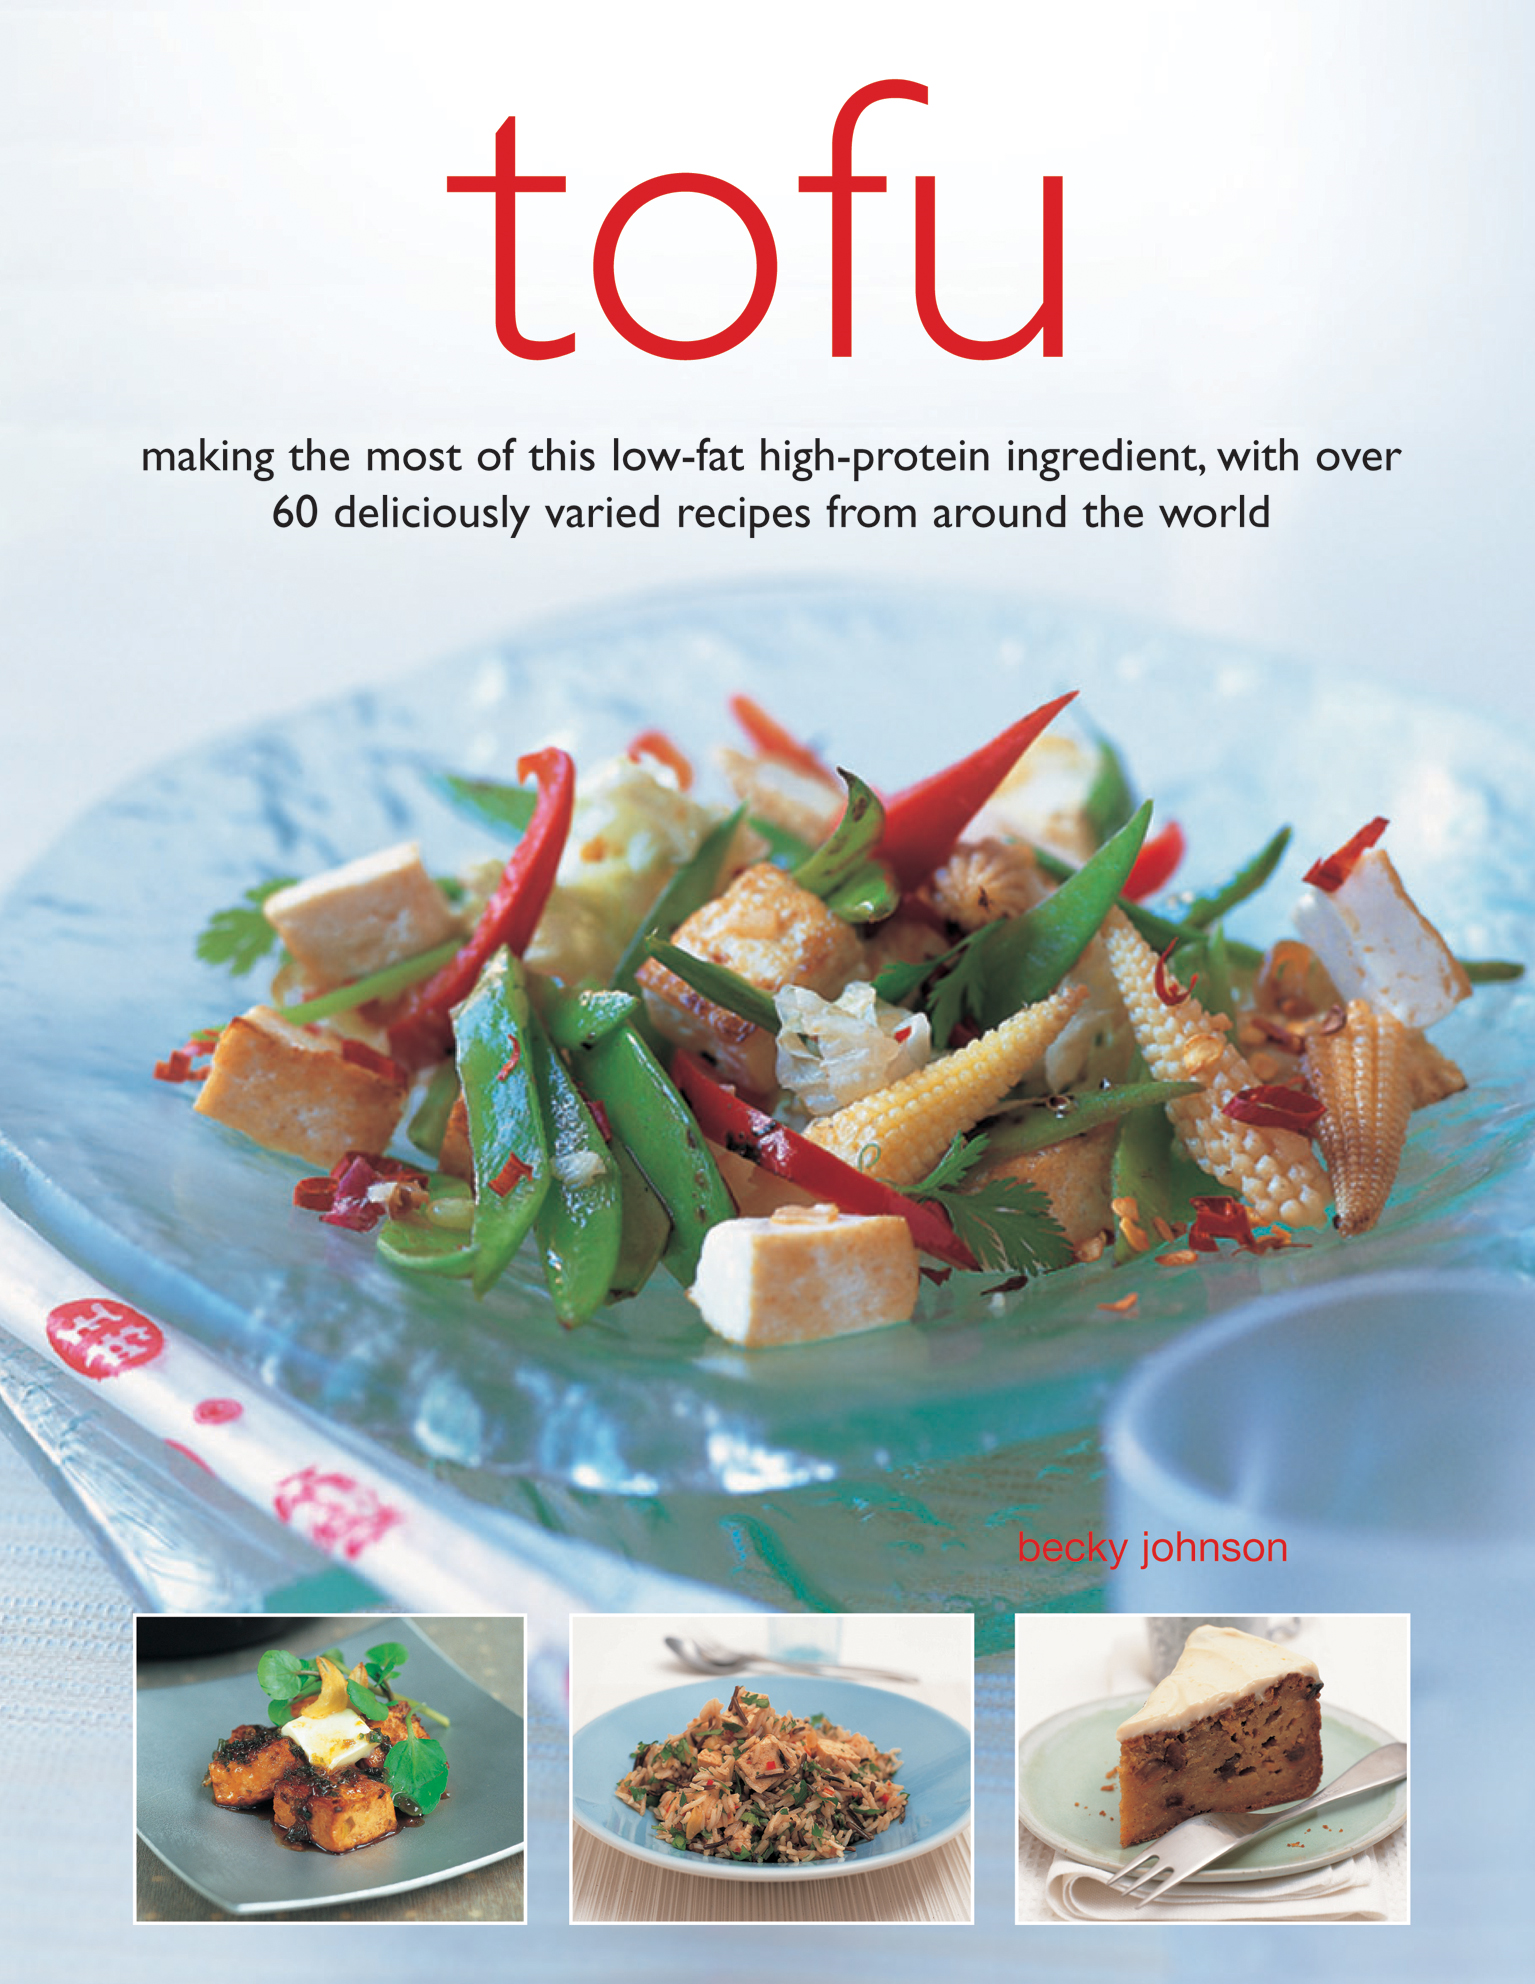 Tofu Making the Most of the Low-fat High-protein Ingredients, with Over 60 Deliciously Varied Recipes from Around the World